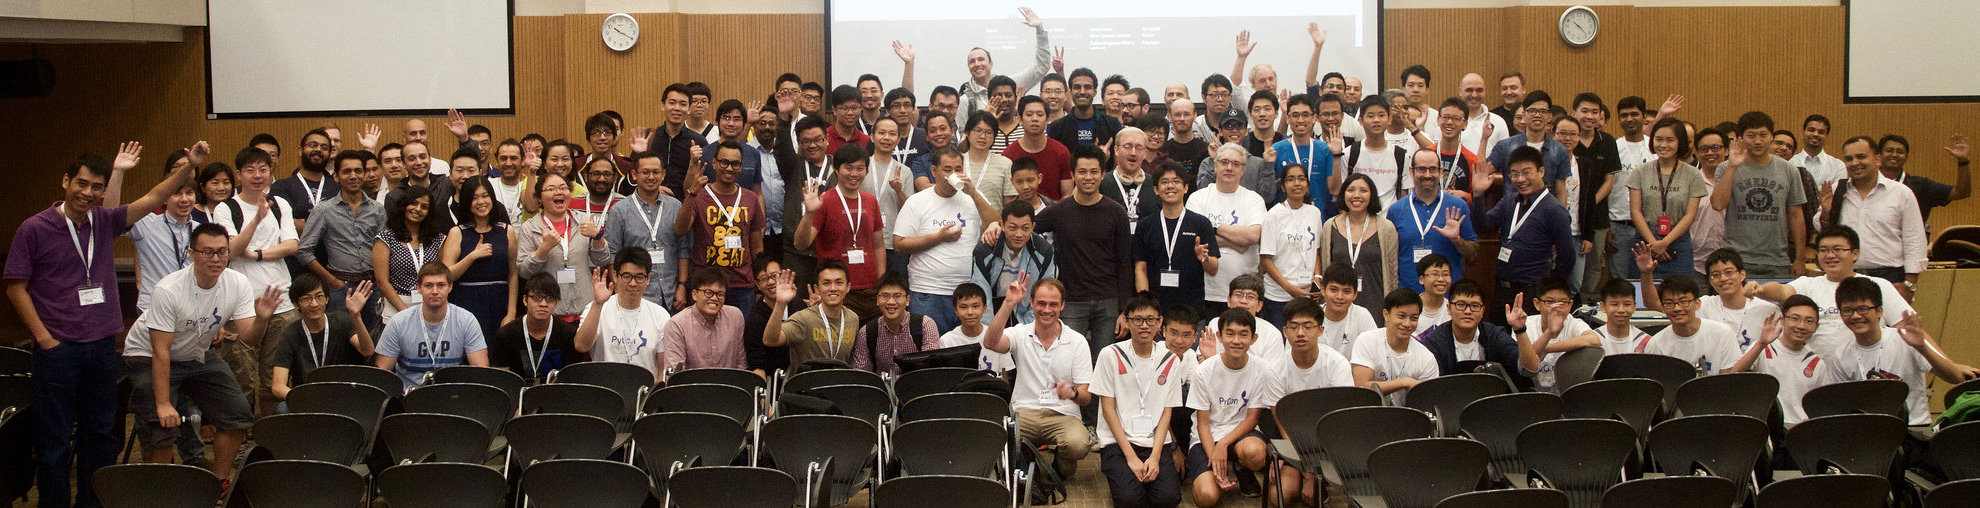 PyConSG 2016 attendees